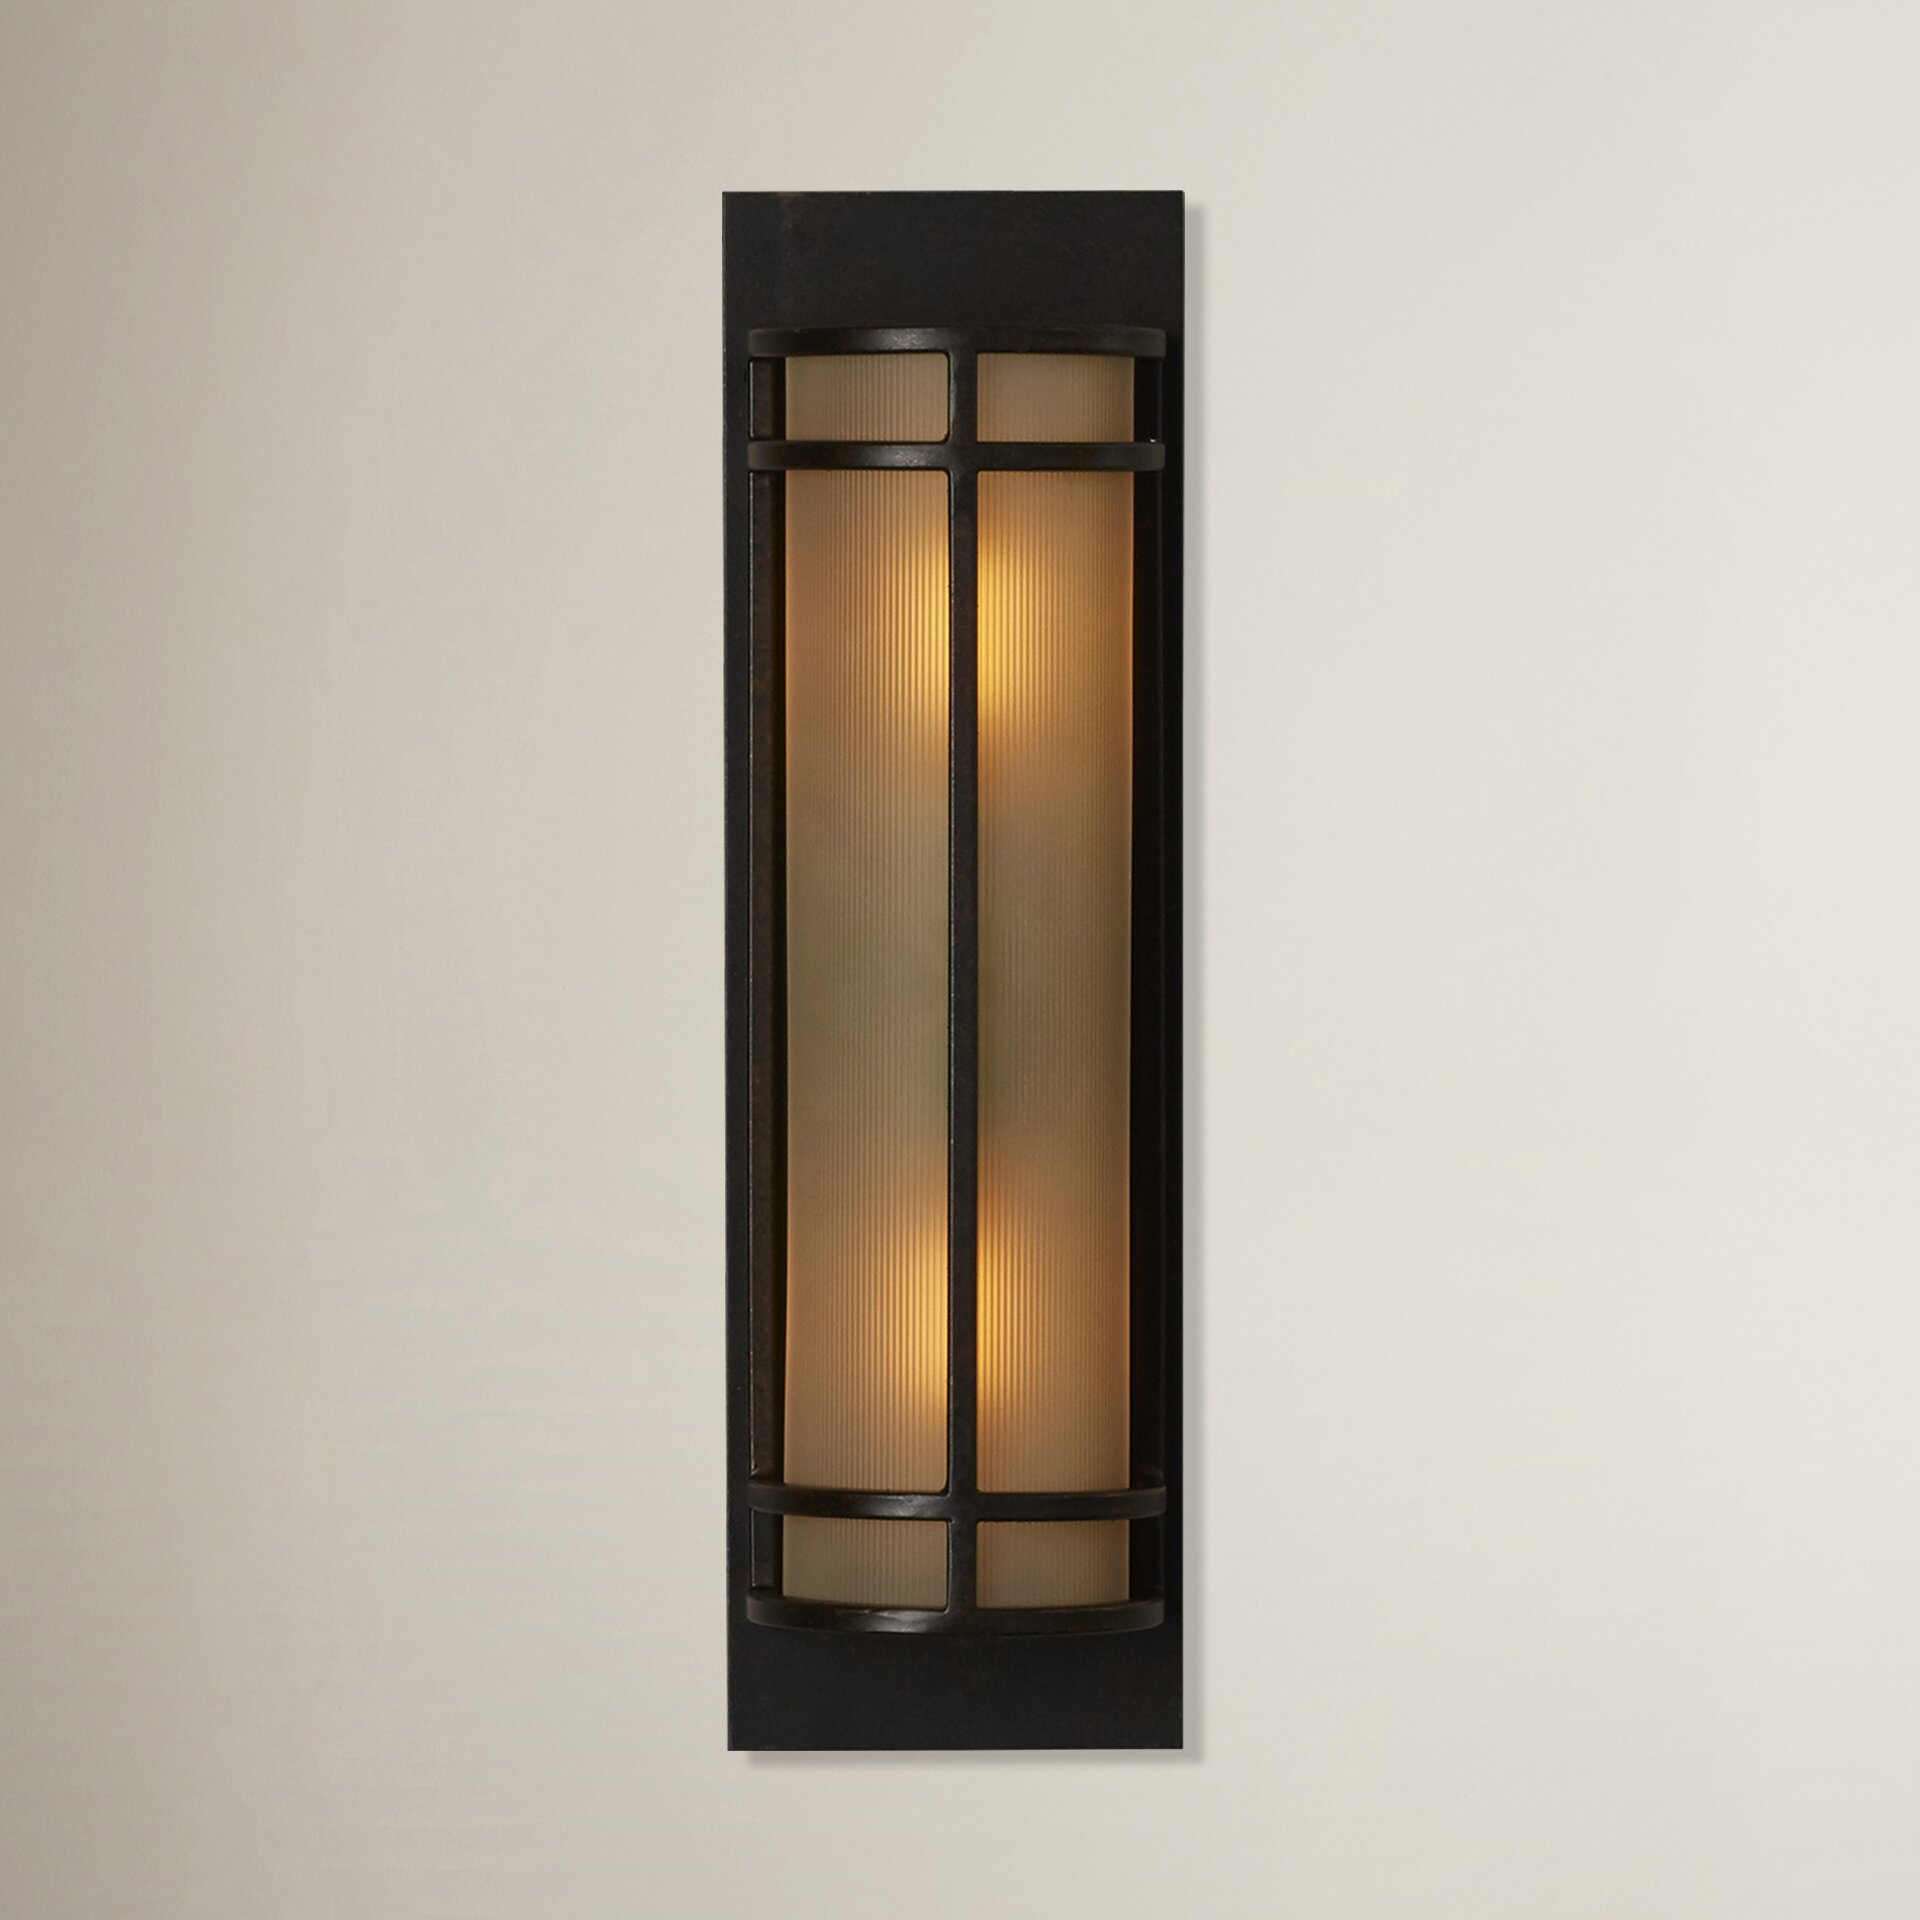 Brayden Studio Oppenheimer 2 Light Flush Wall Sconce